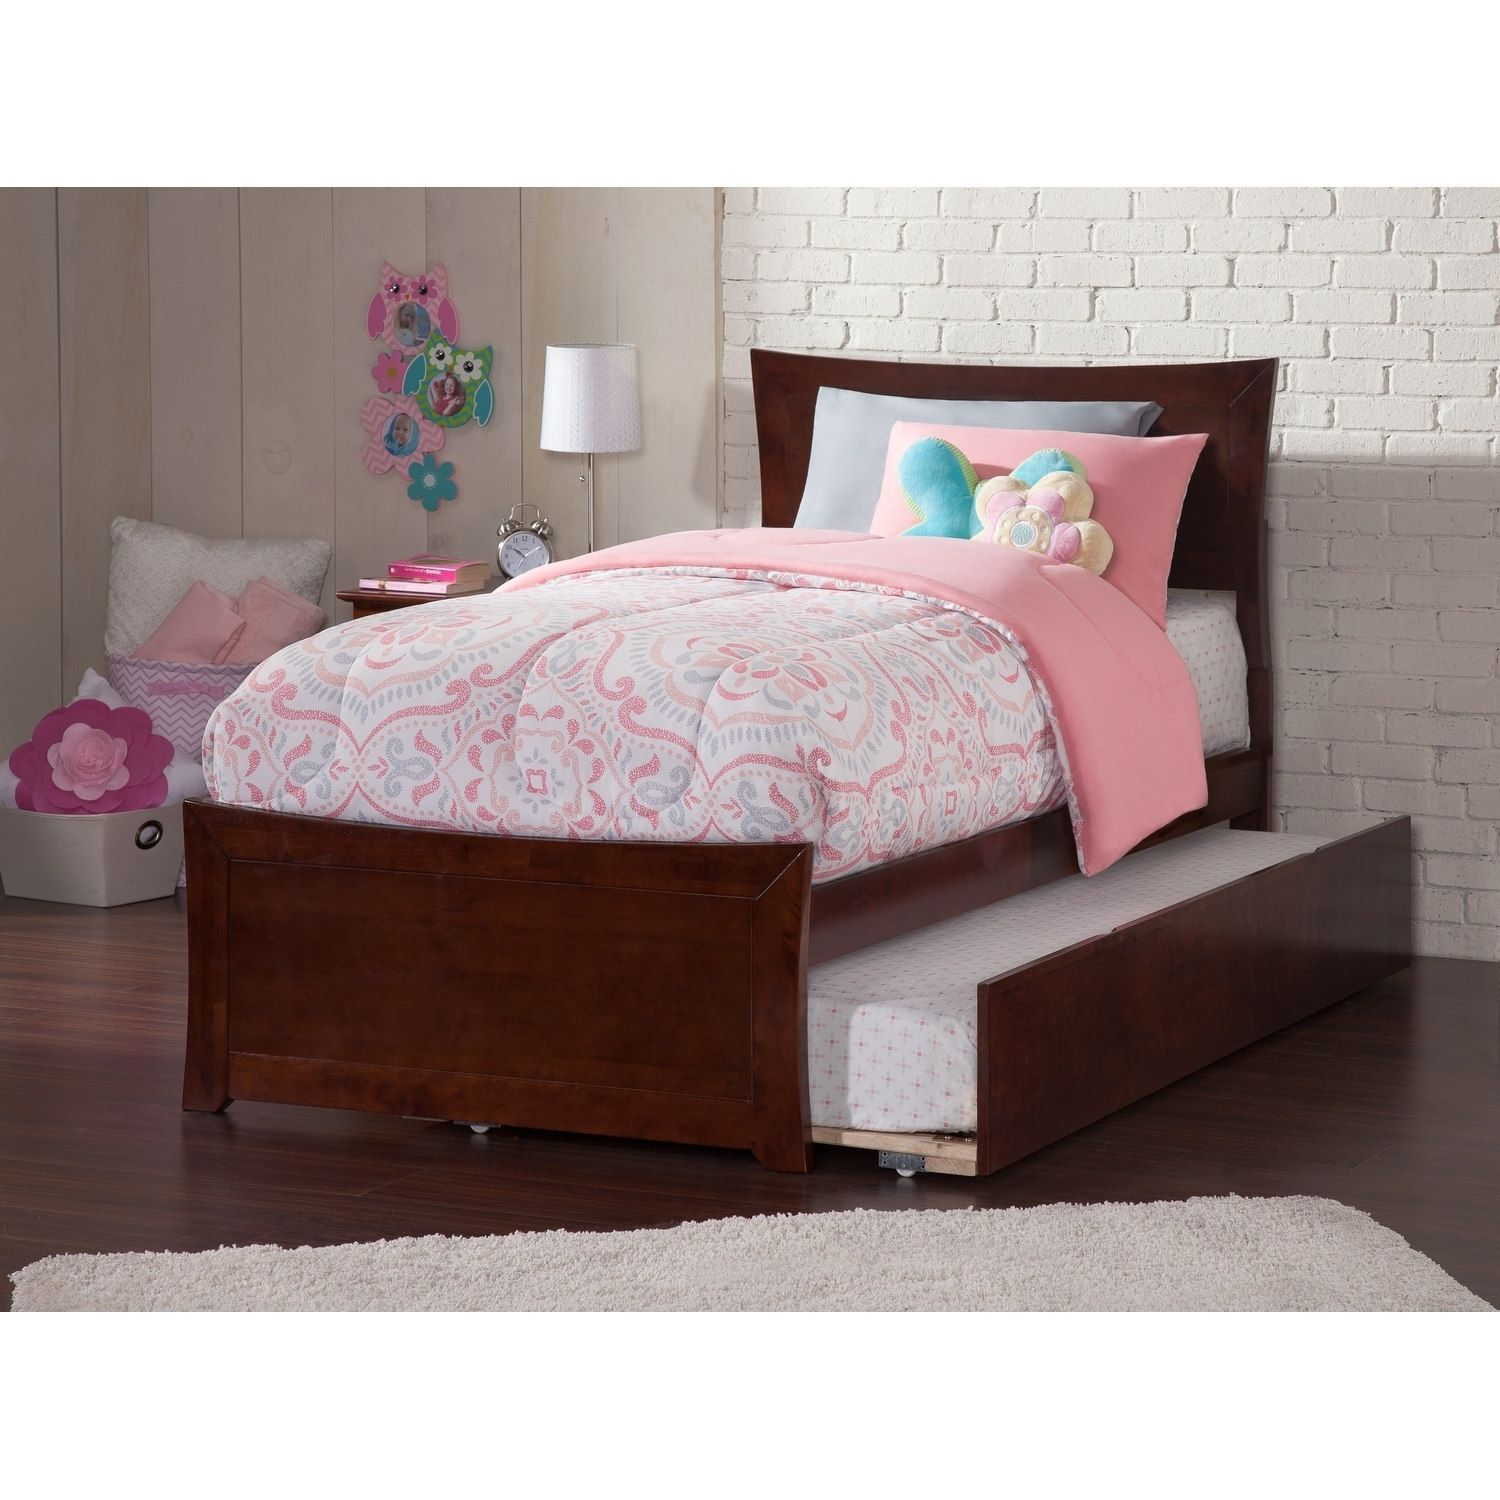 Atlantic Furniture Metro Twin Bed with Matching Foot Board with